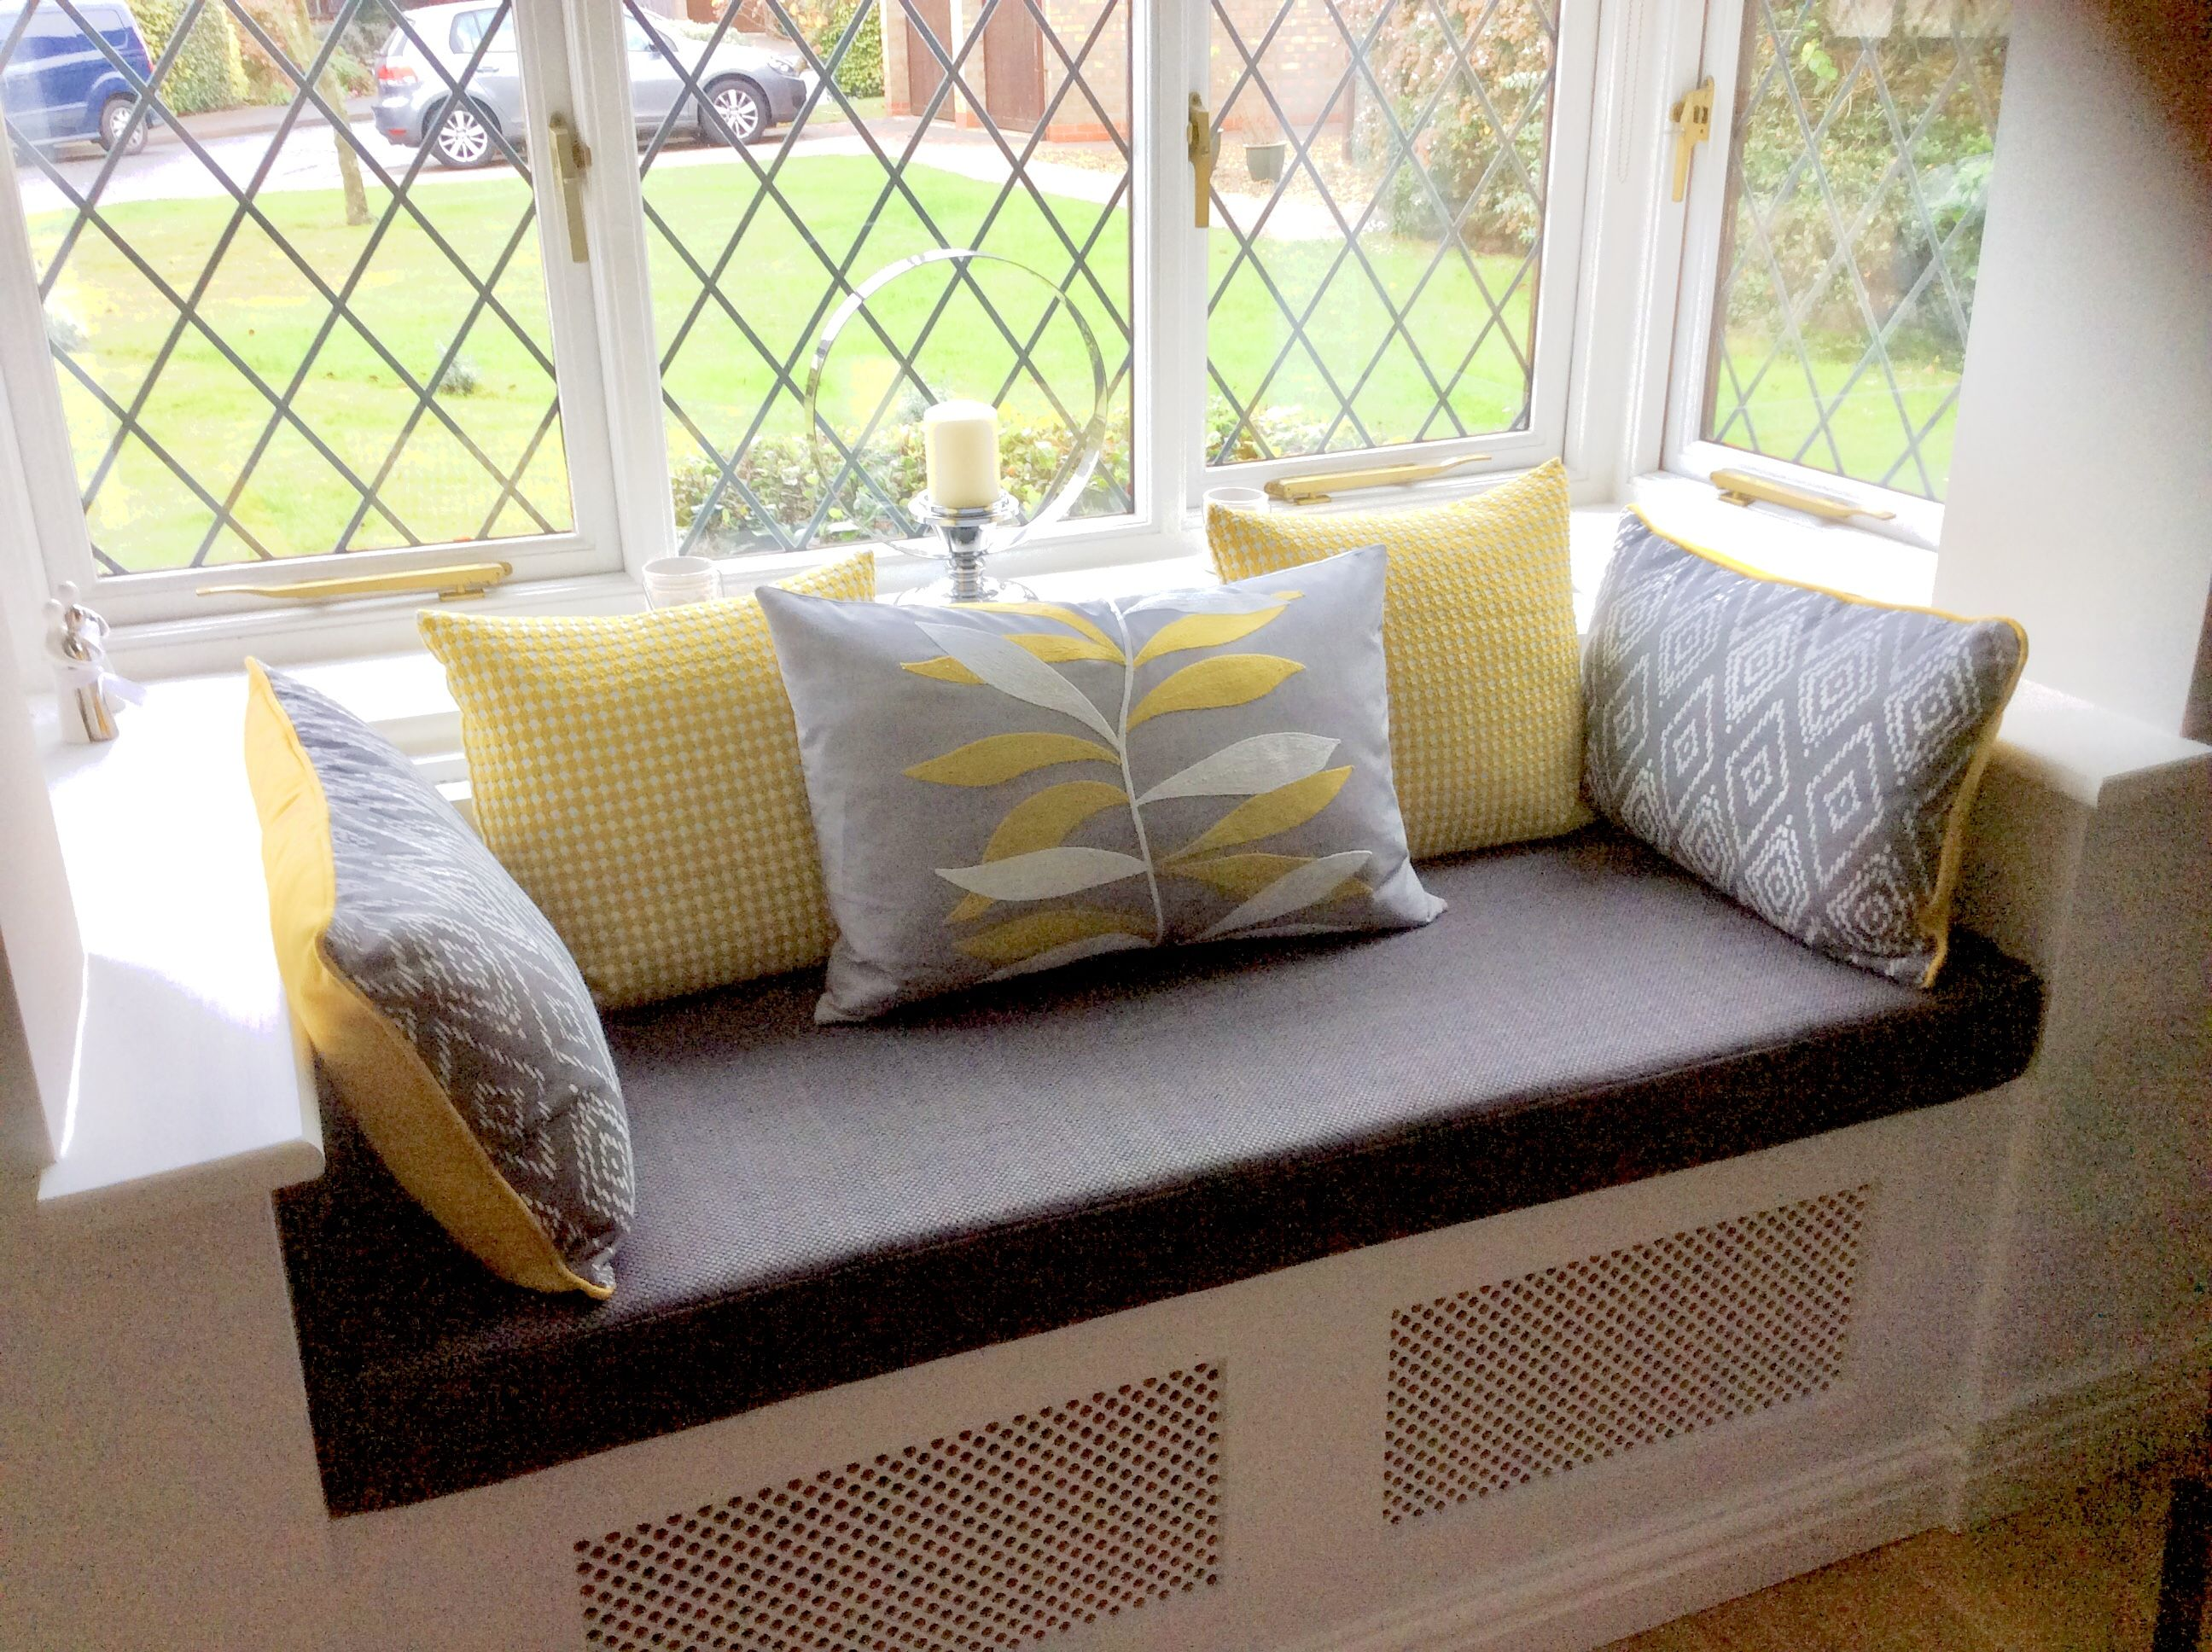 Fabulous Radiator Cover Bench In 2019 Small Sitting Rooms Window Unemploymentrelief Wooden Chair Designs For Living Room Unemploymentrelieforg